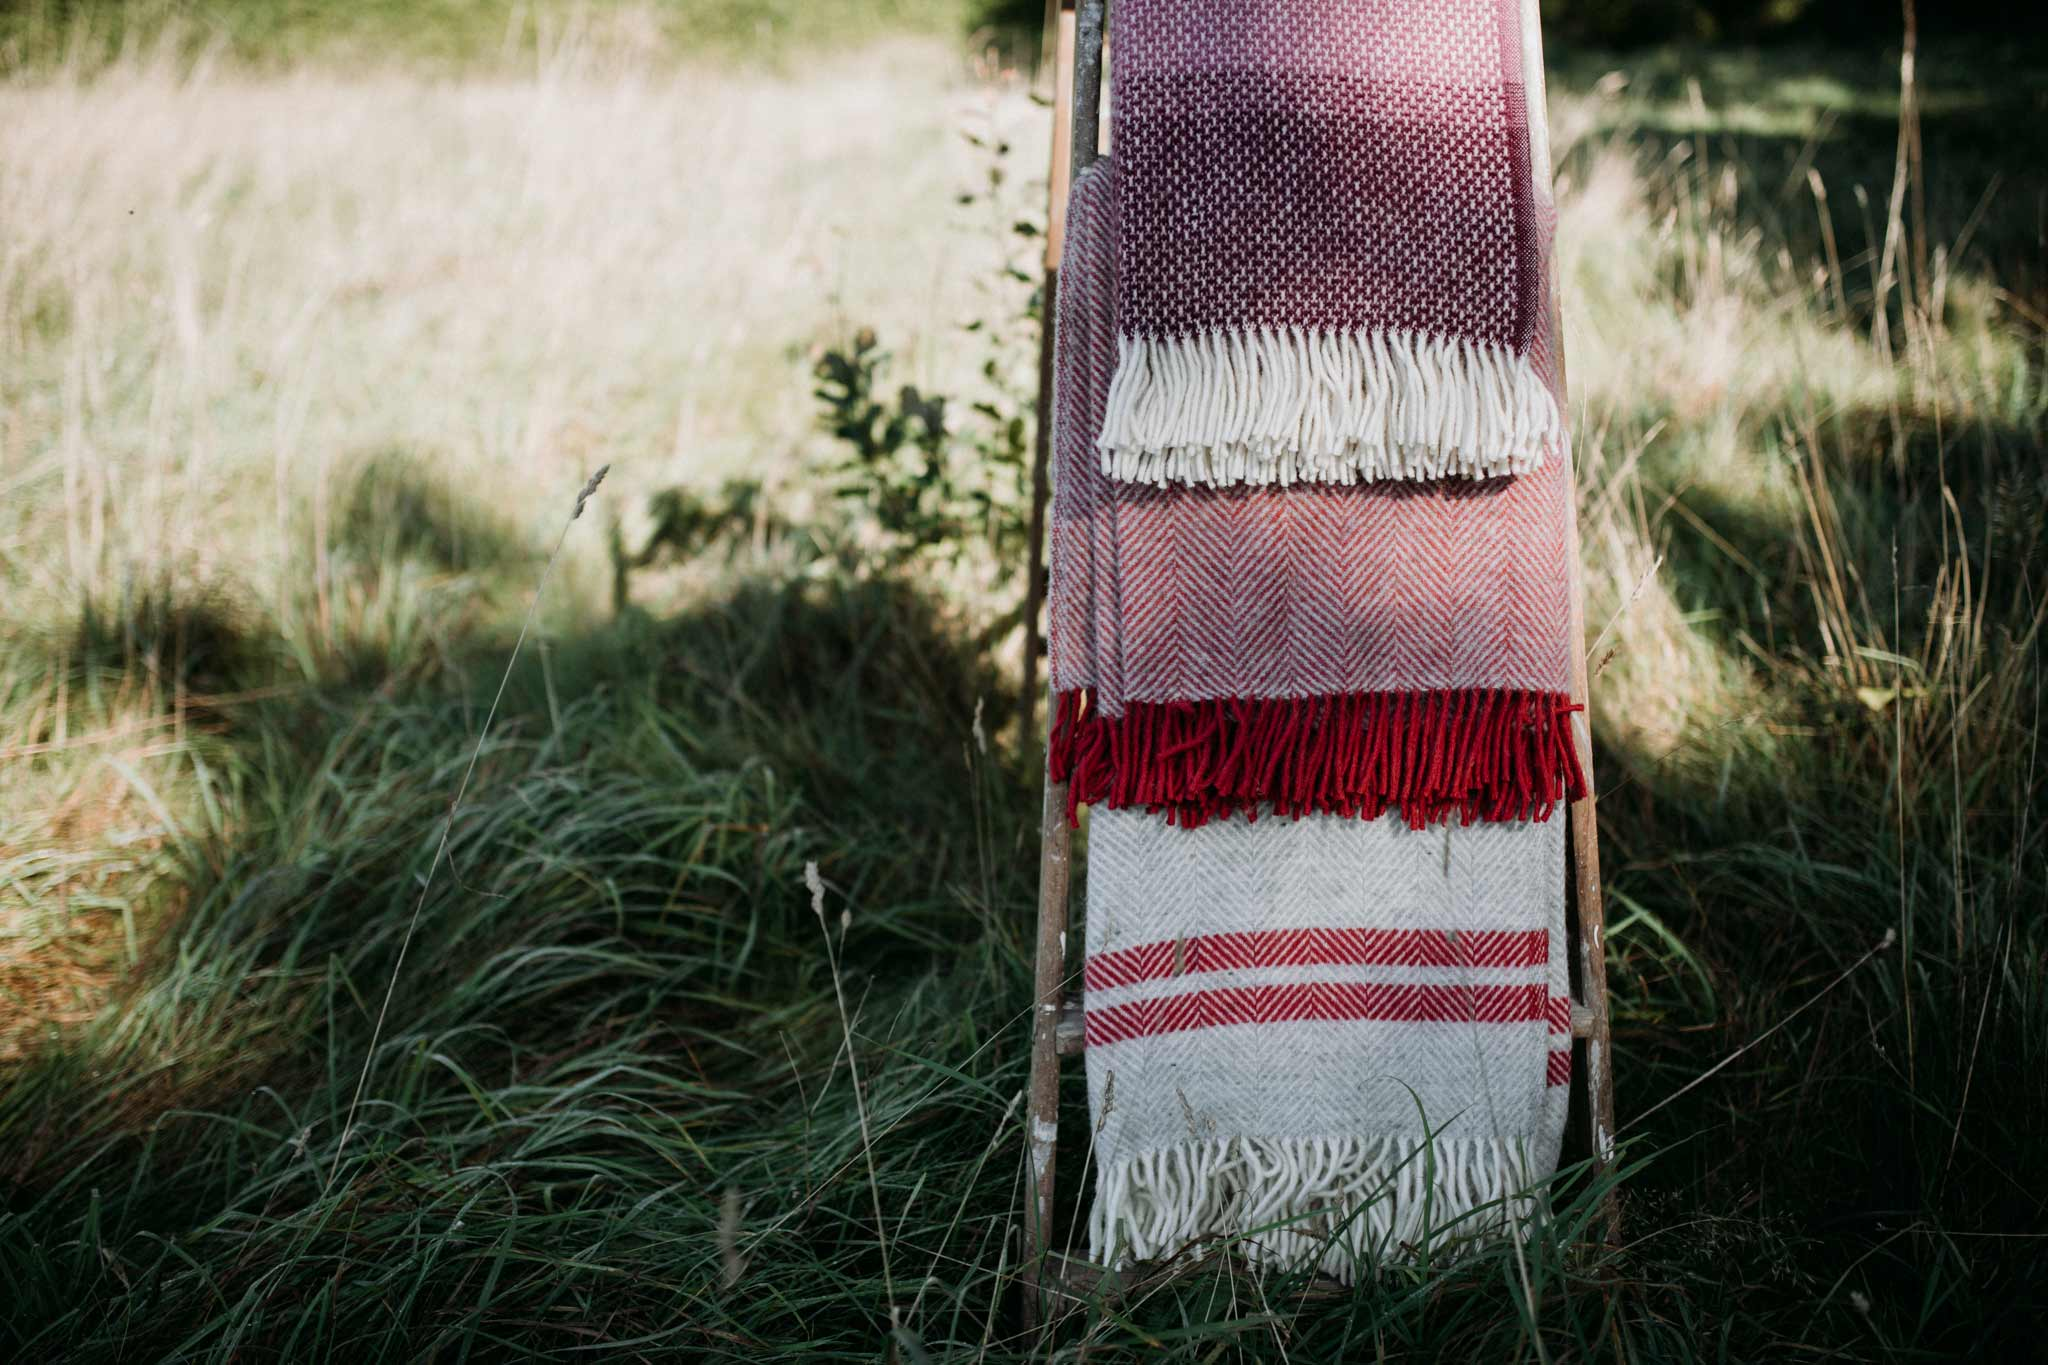 Blankets on a stand in a field